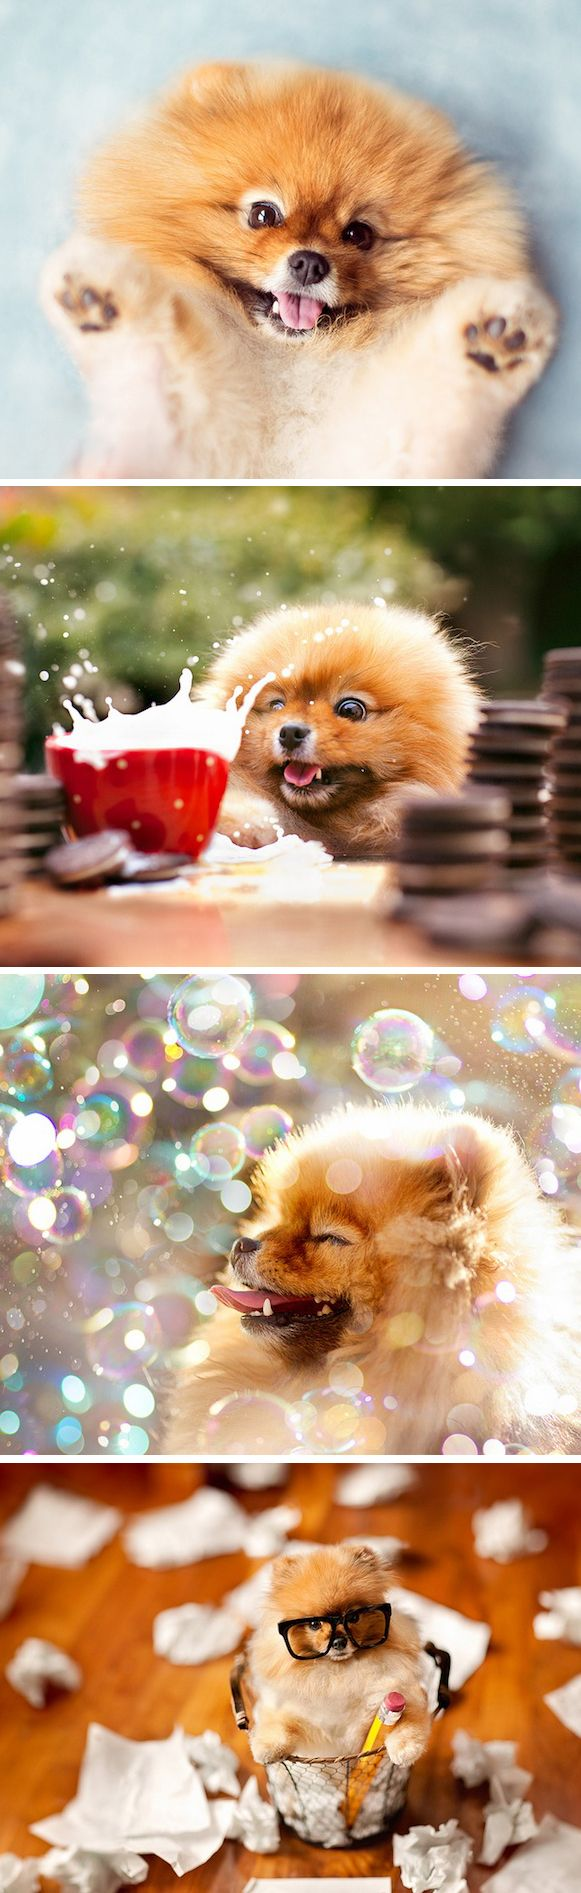 Best Pomeranian Ideas On Pinterest Pomeranian Puppy Teacup - Someone should have told this dog owner that pomeranians melt in water